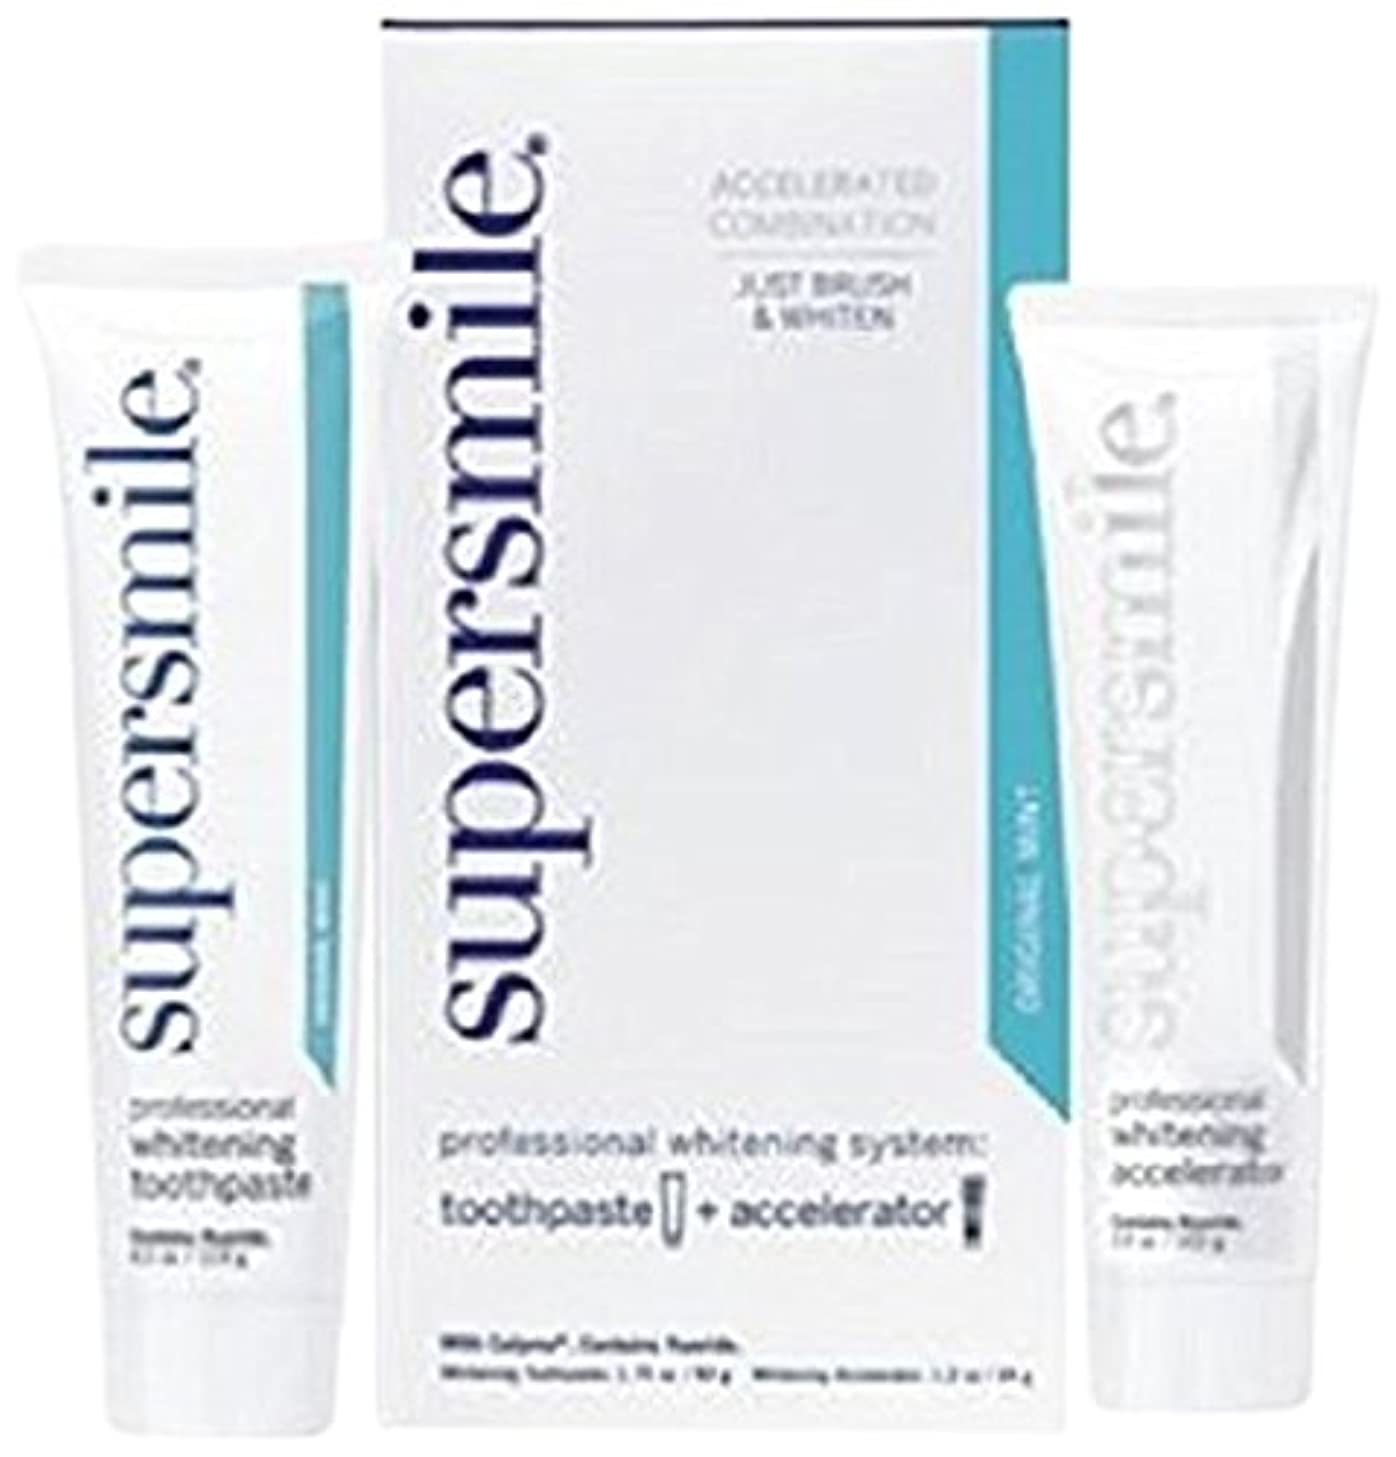 悲劇的な受信機商標Supersmile Professional Whitening System: Toothpaste 50g/1.75oz + Accelerator 34g/1.2oz - 2pcs by SuperSmile